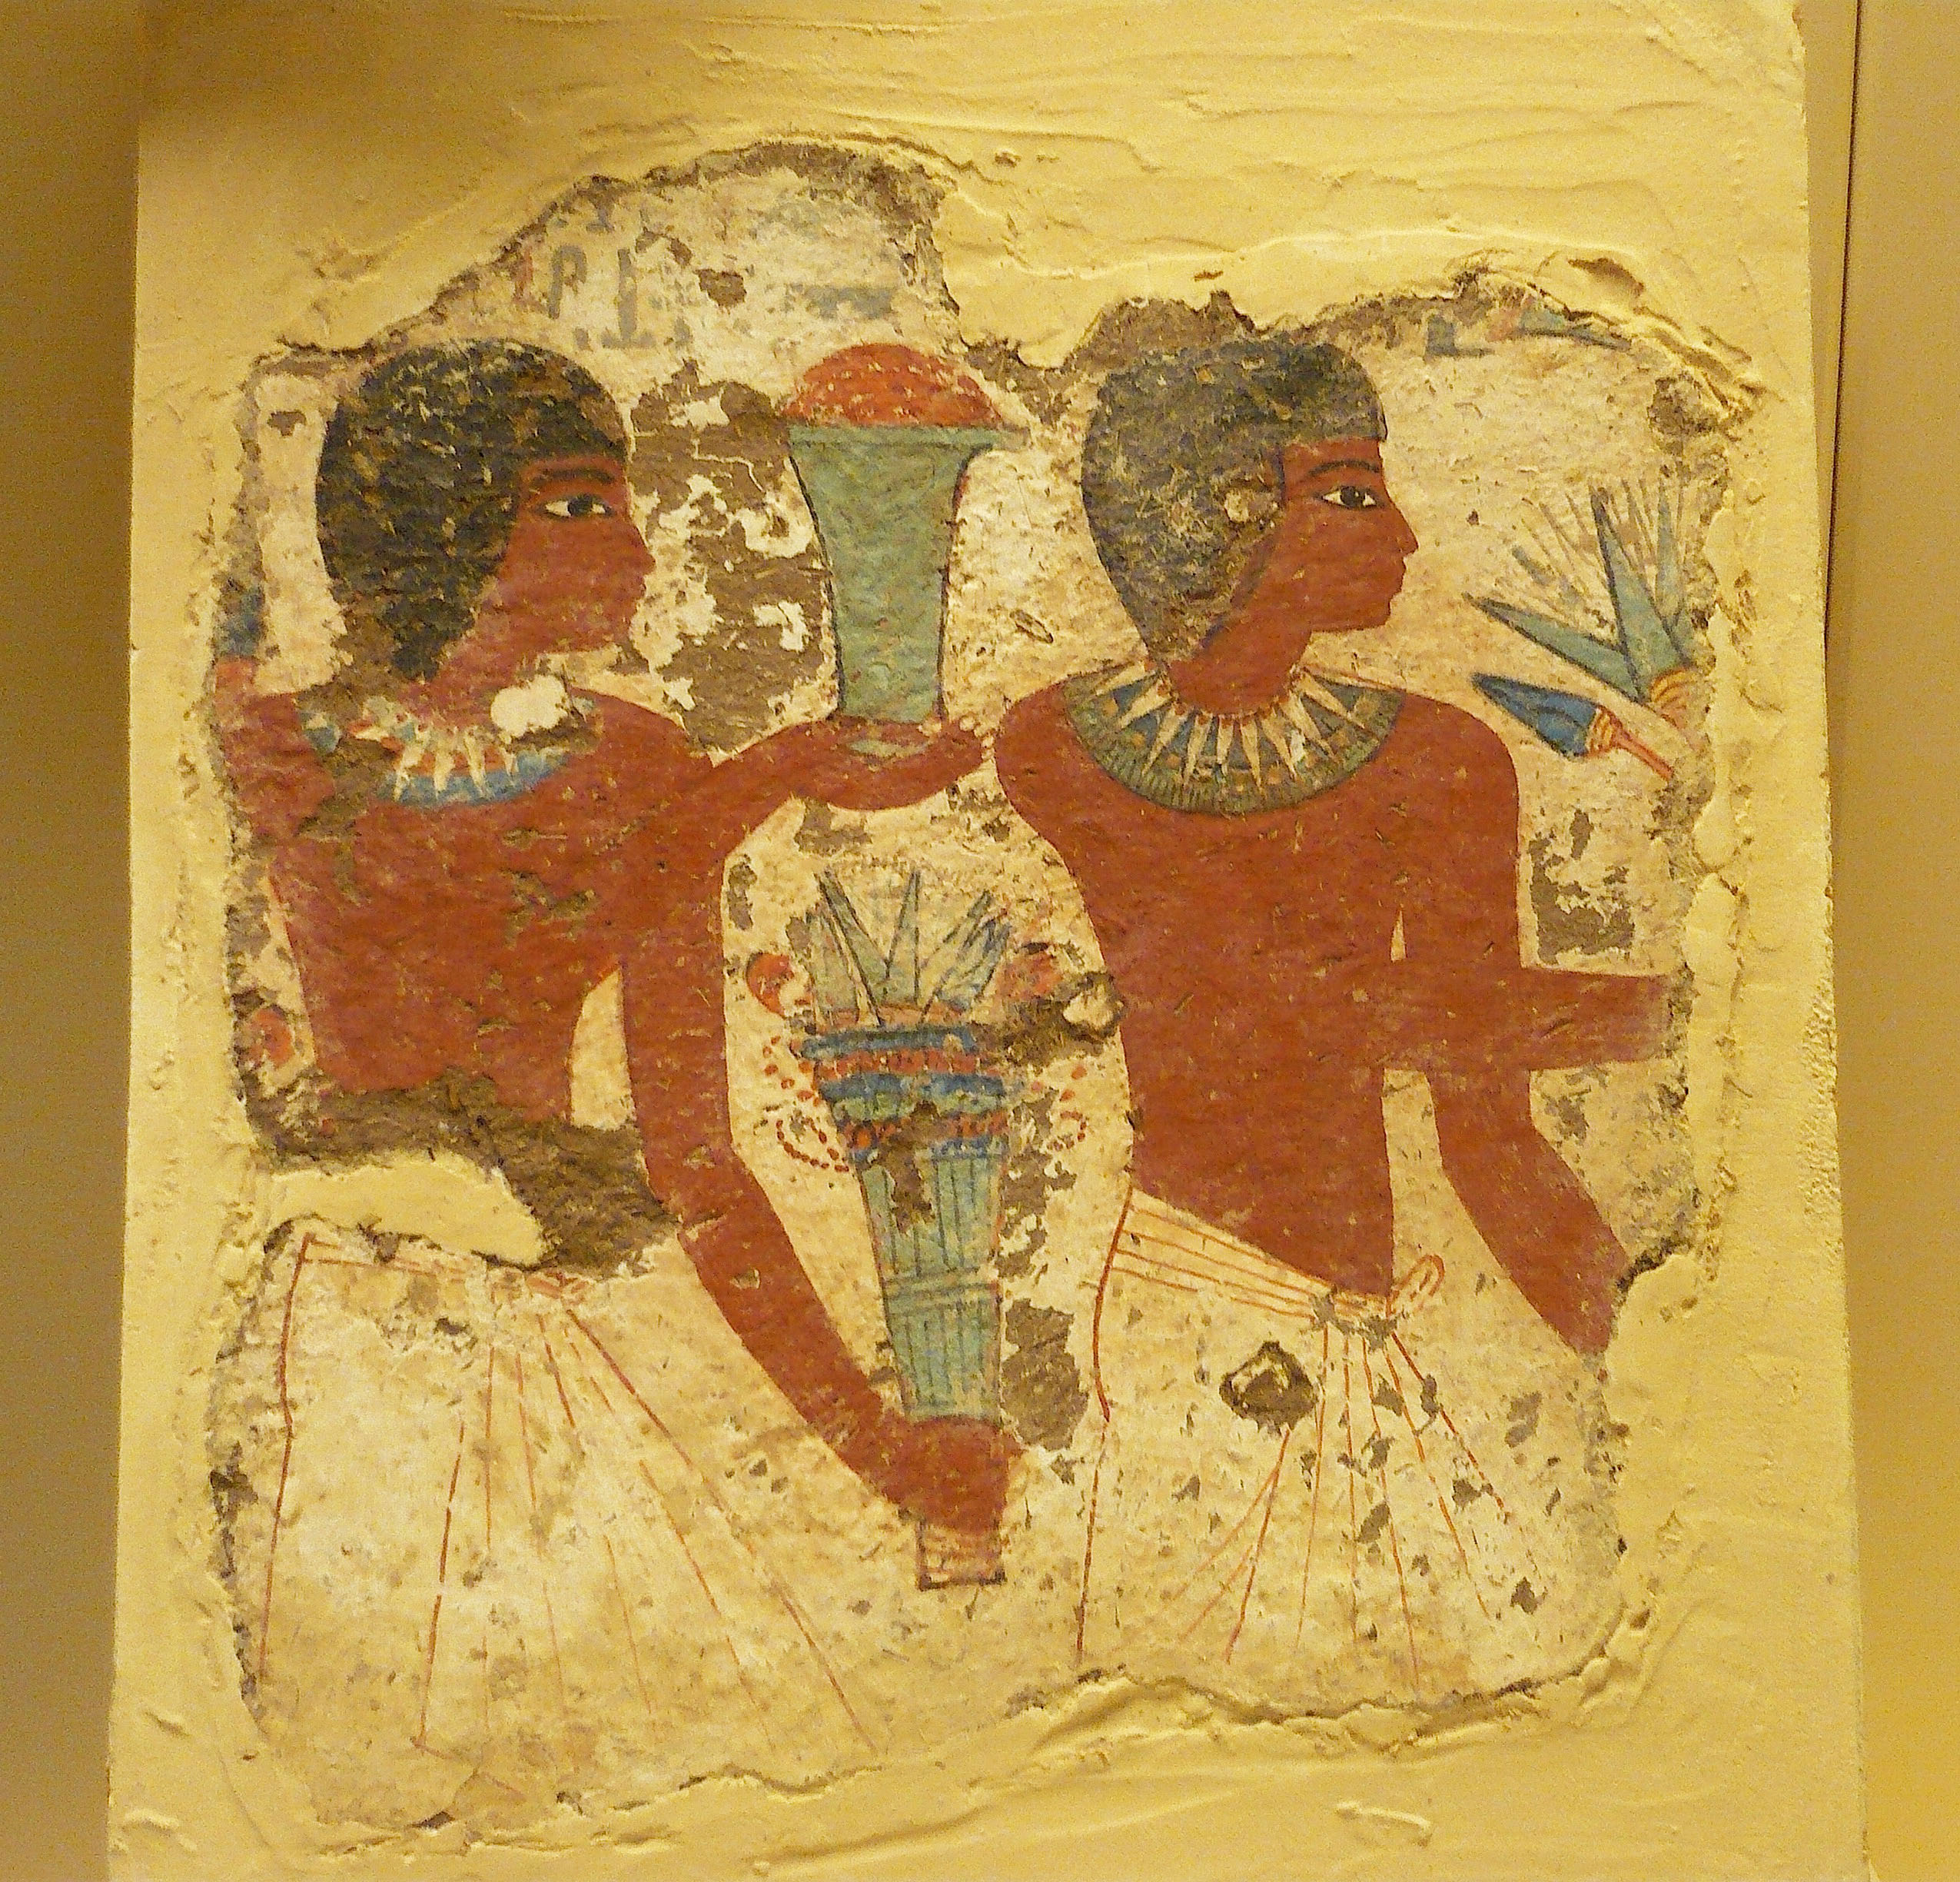 Ancient egyptian funeral painting illustration ancient for Ancient egyptian mural paintings